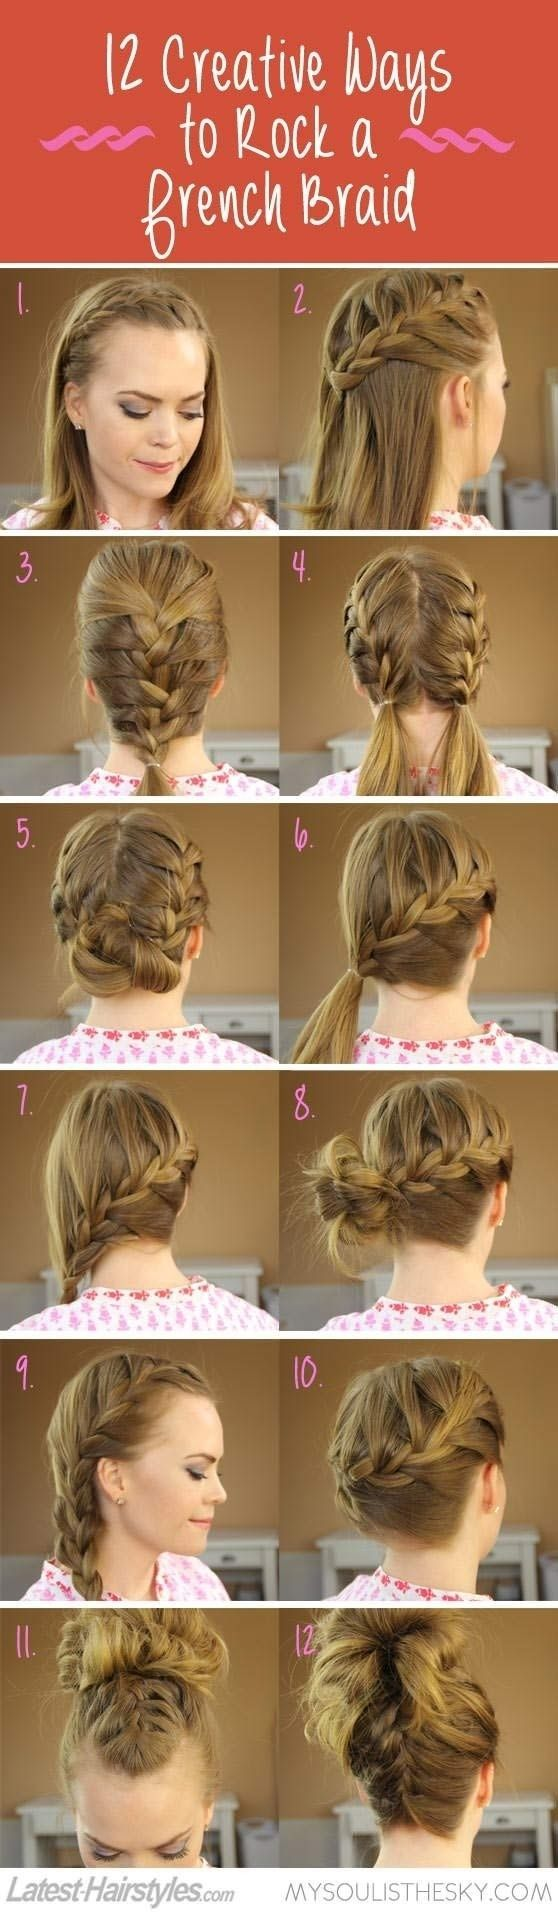 20 Cute and Easy Braided Hairstyle Tutorials | Outfit Trends | Outfit Trends